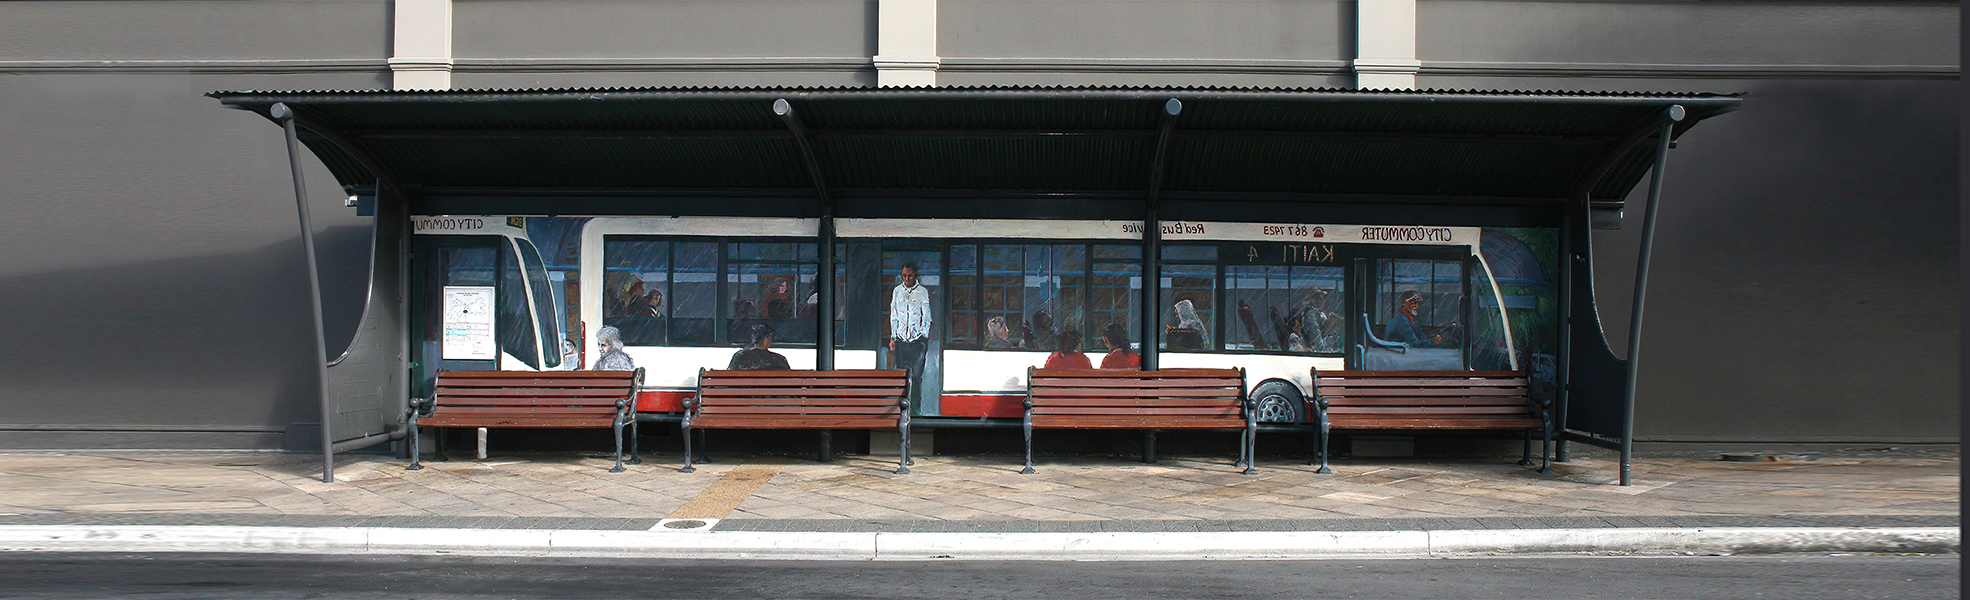 Gisborne Mudge Bus Shelter 1970603